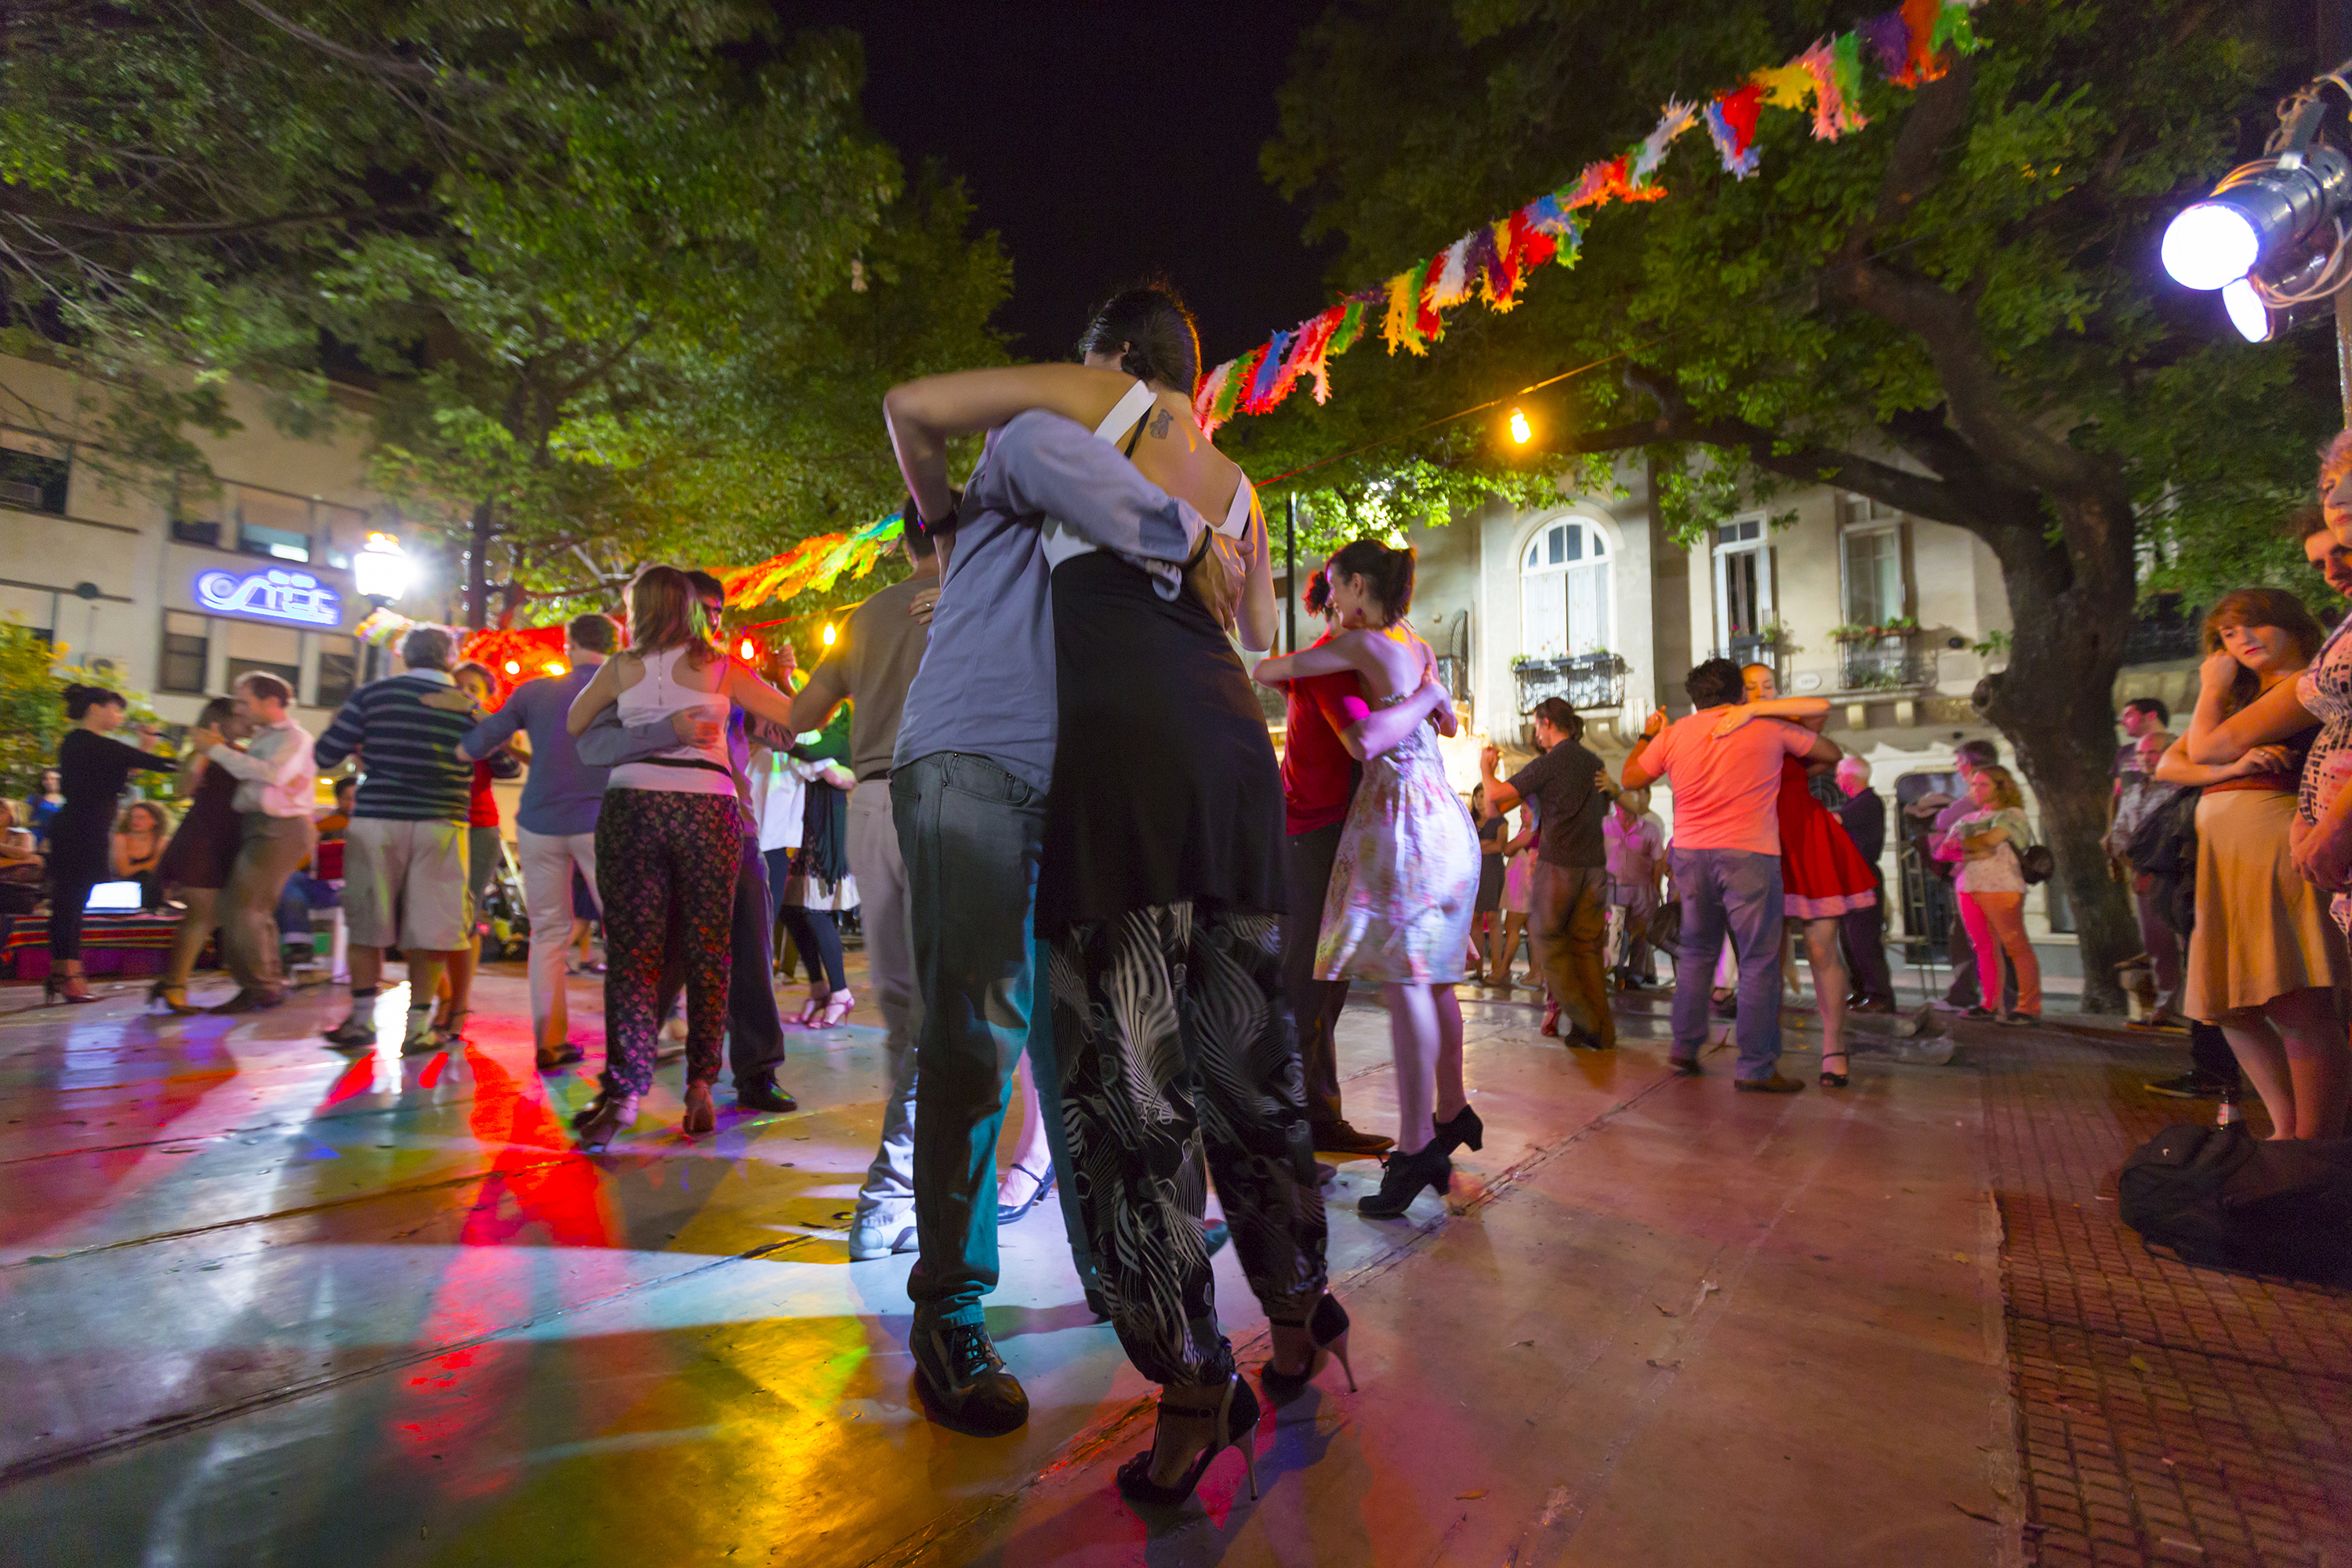 People dancing Tango in Buenos Aires, Argentina